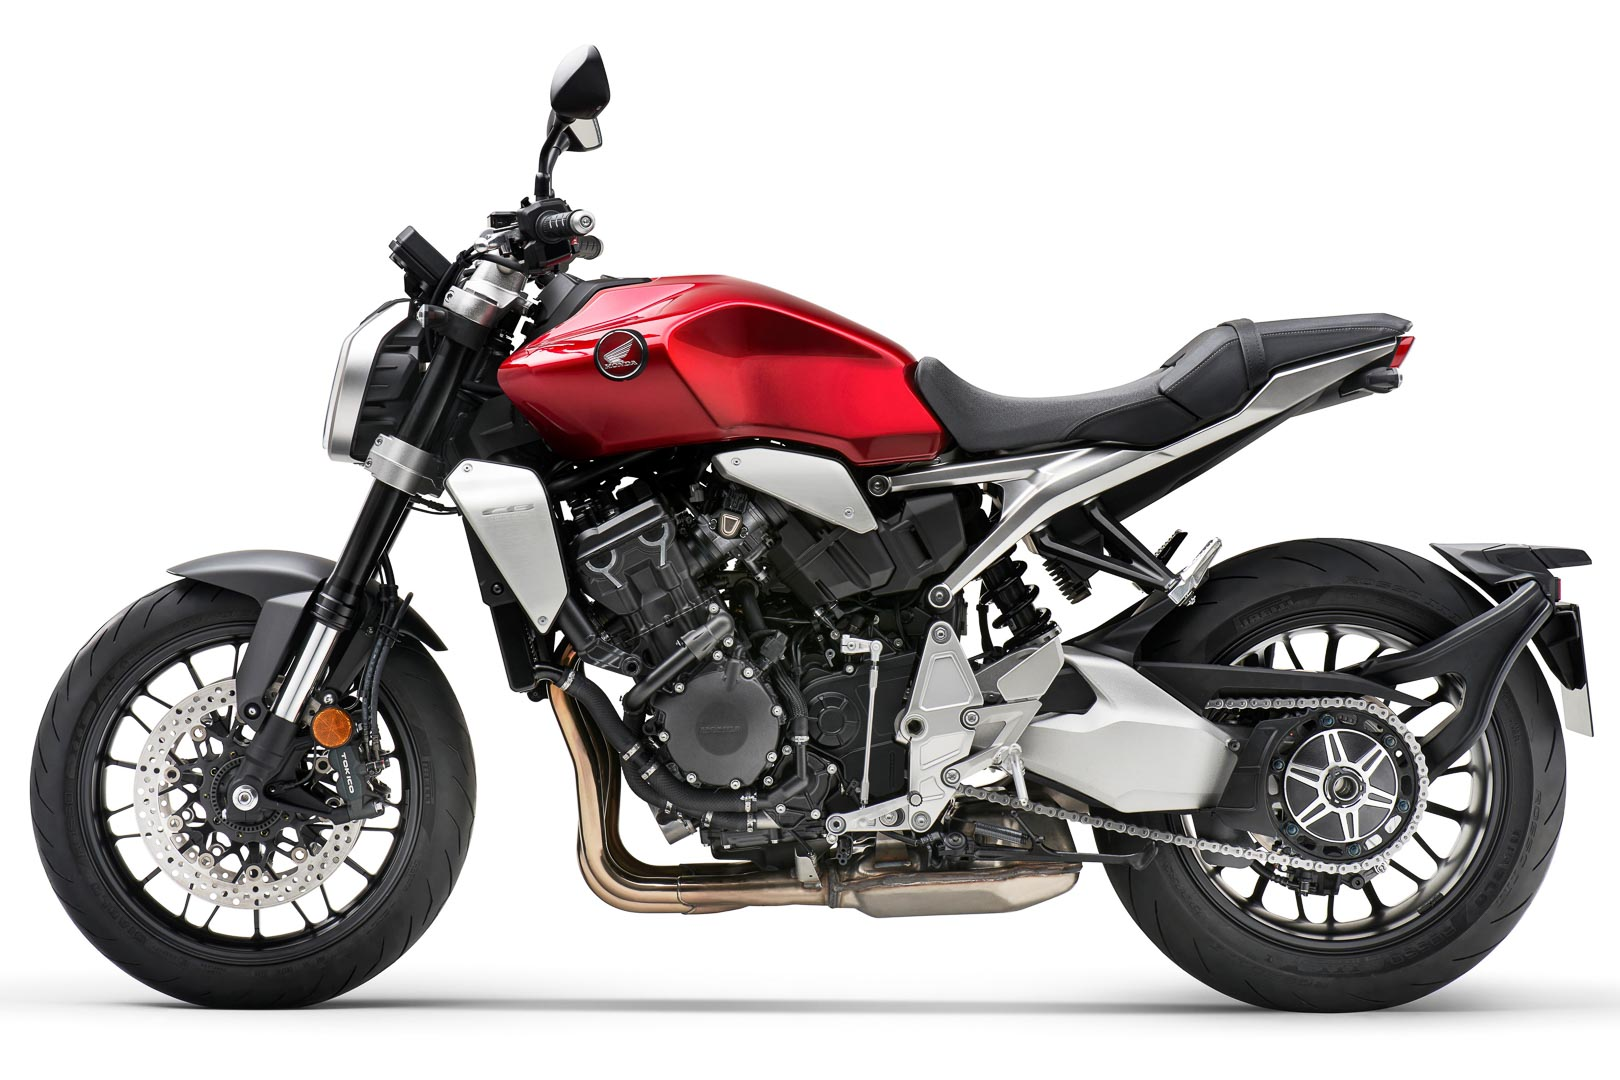 2021 Honda CB1000R First Look: MSRP